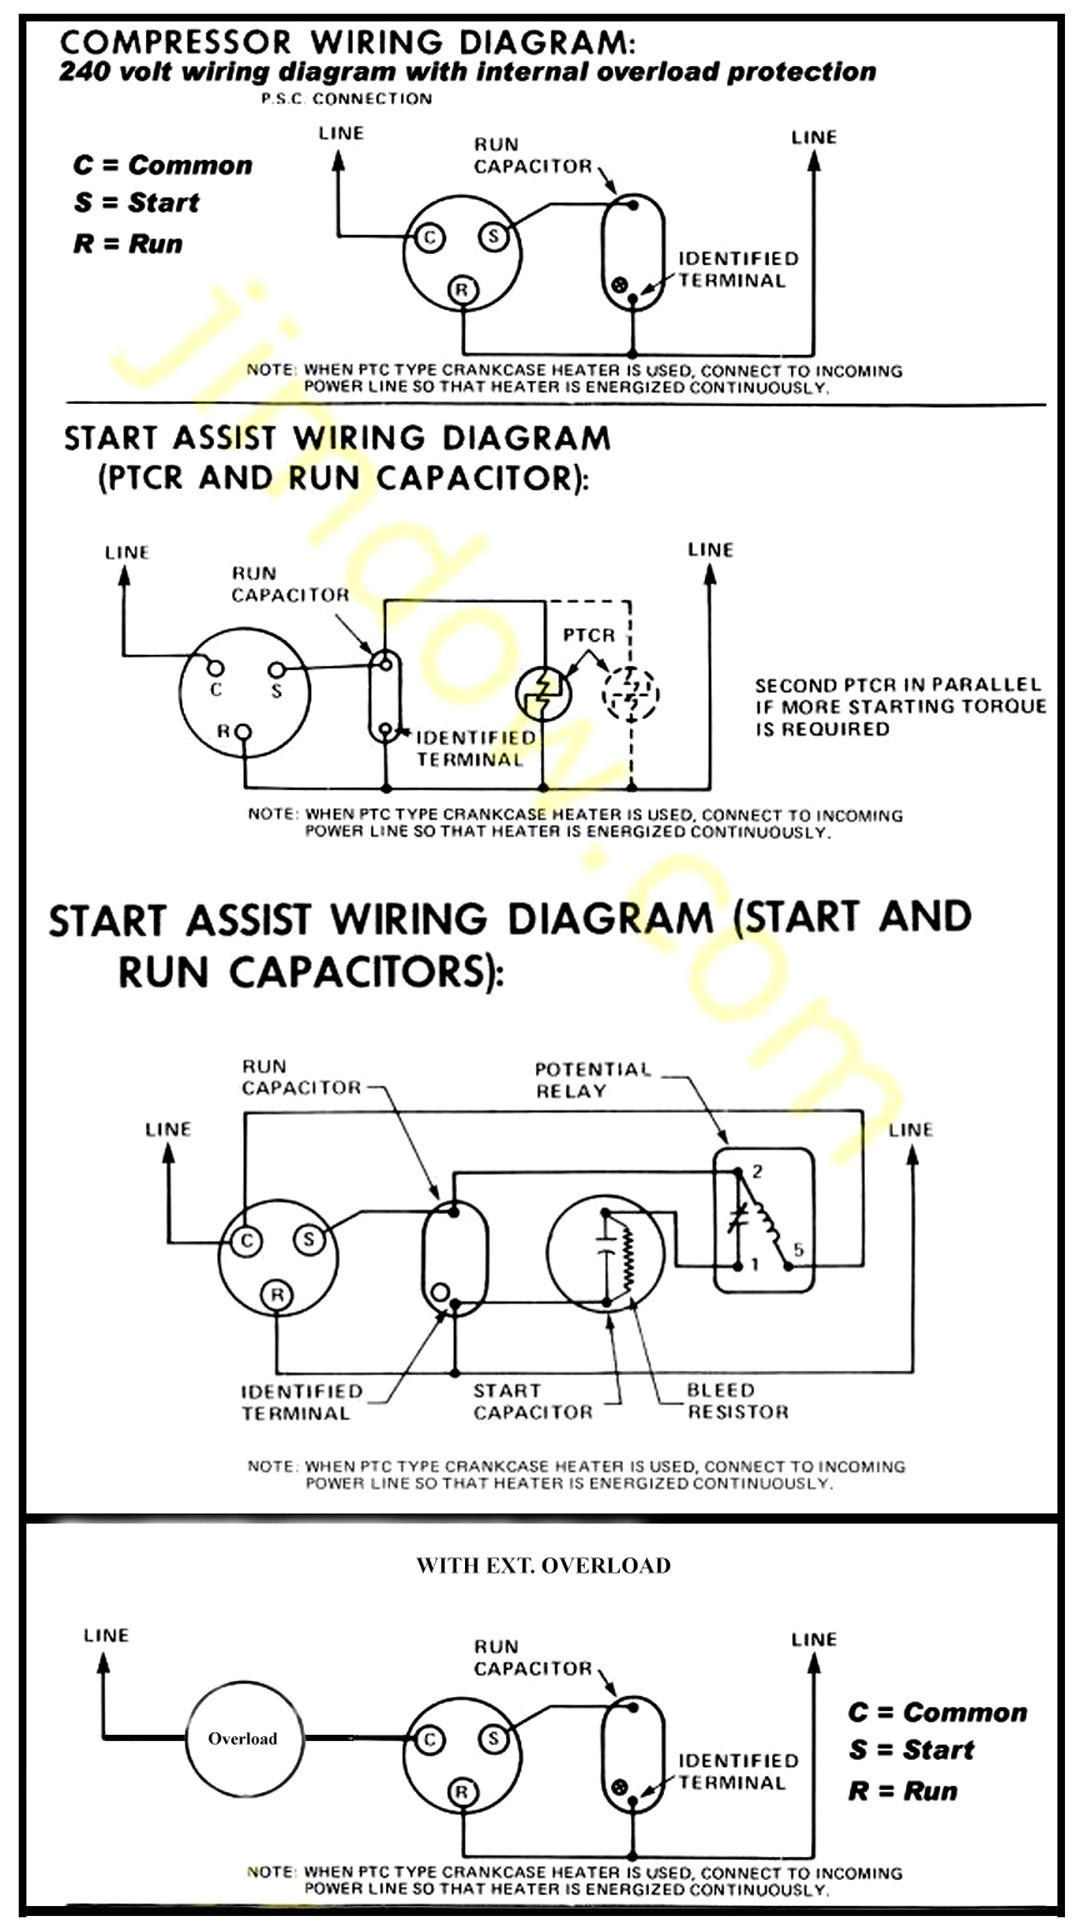 3 Wire 220v Wiring Diagram Schematic Diagrams 240 Volt Refrigeration Condenser 220 Trusted Phase Electric Motor